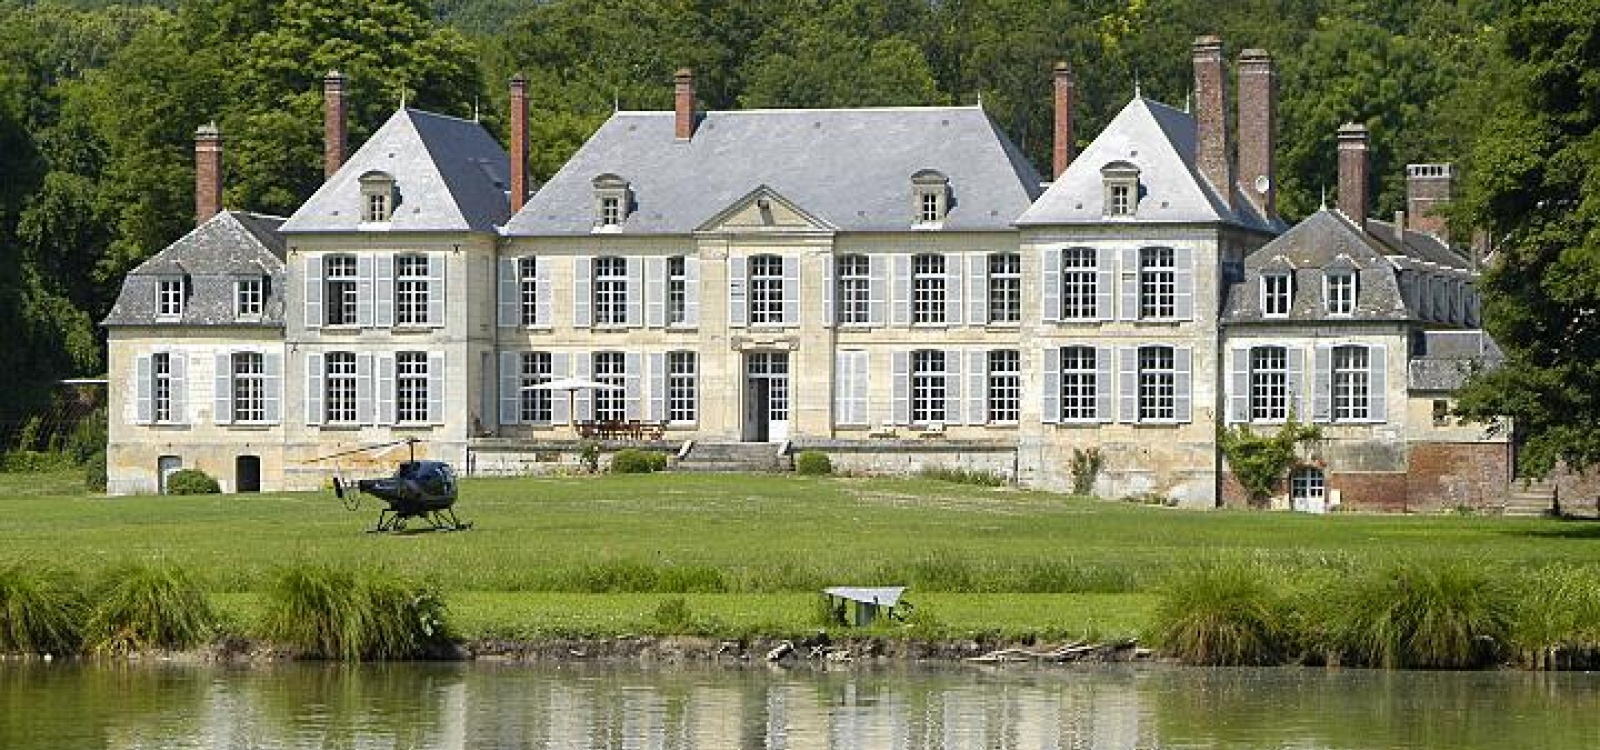 Roye,Somme,France,Château,1062